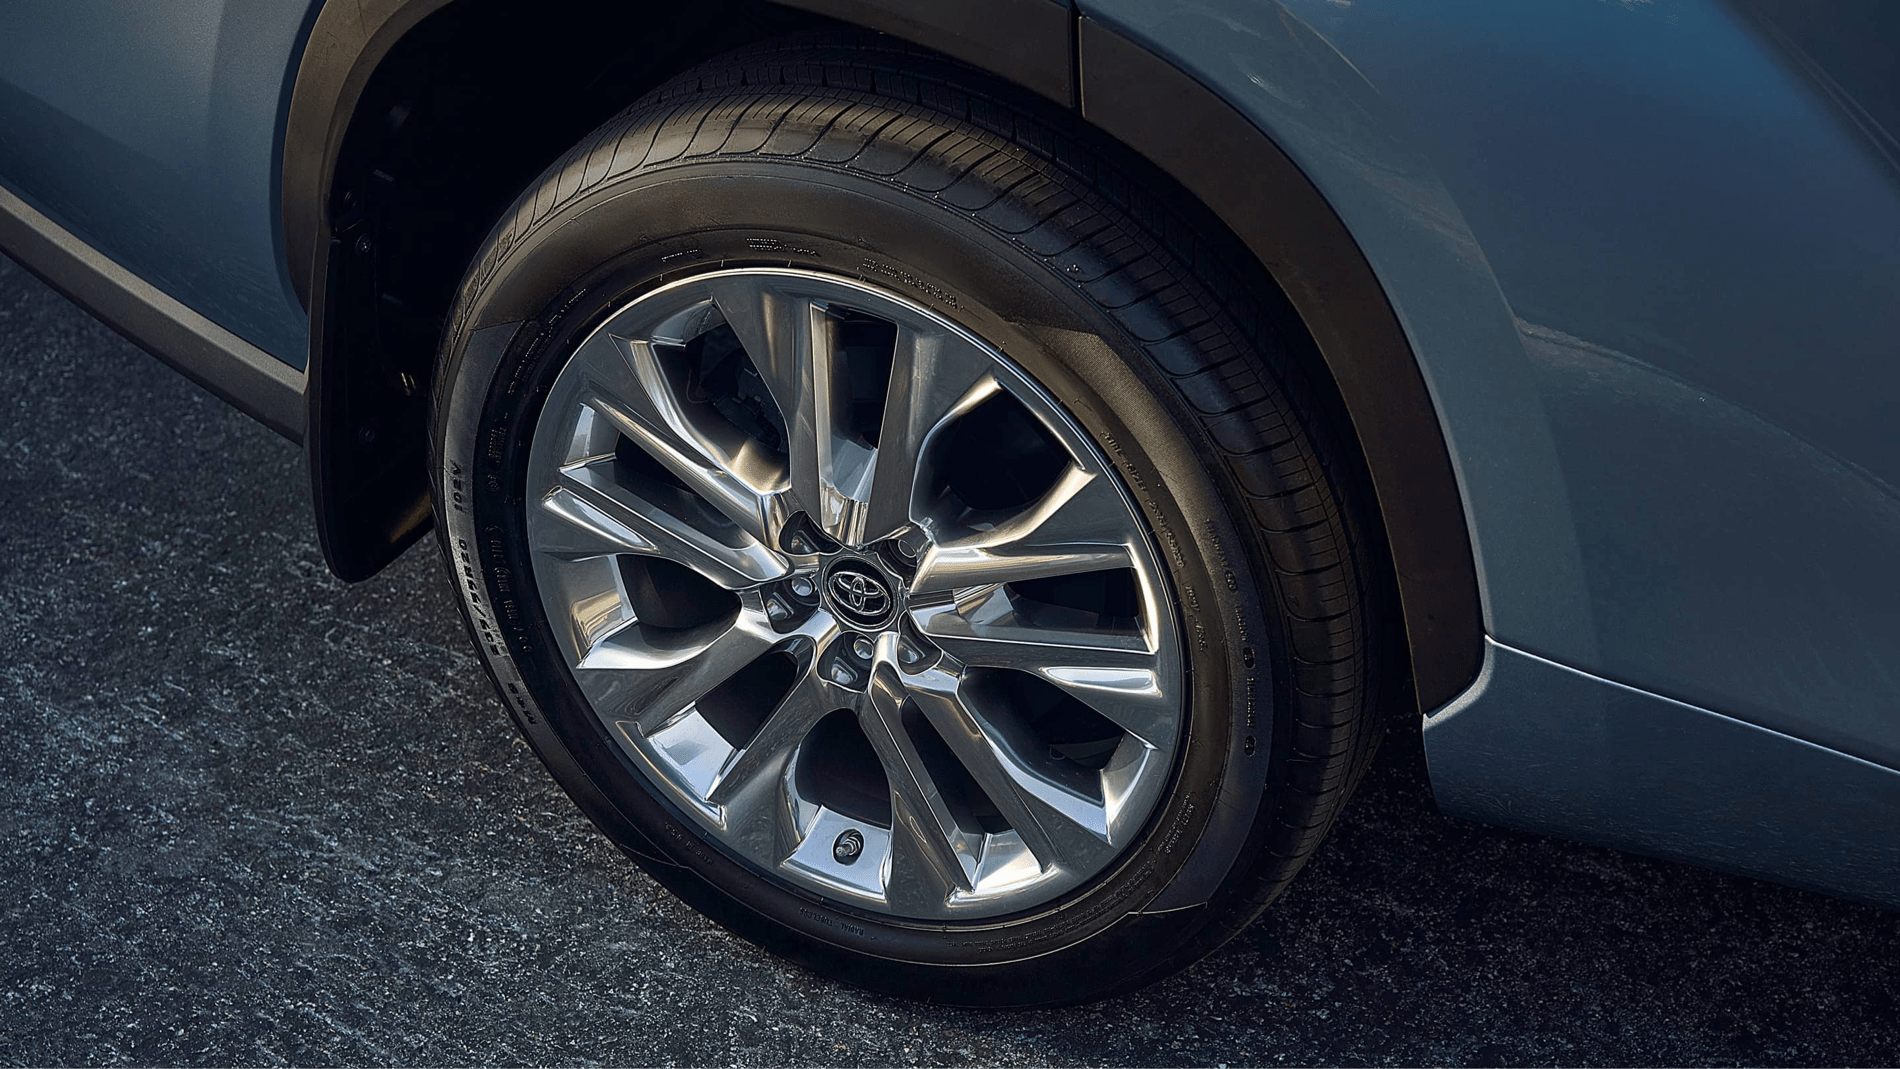 2020 Highlander wheel rim